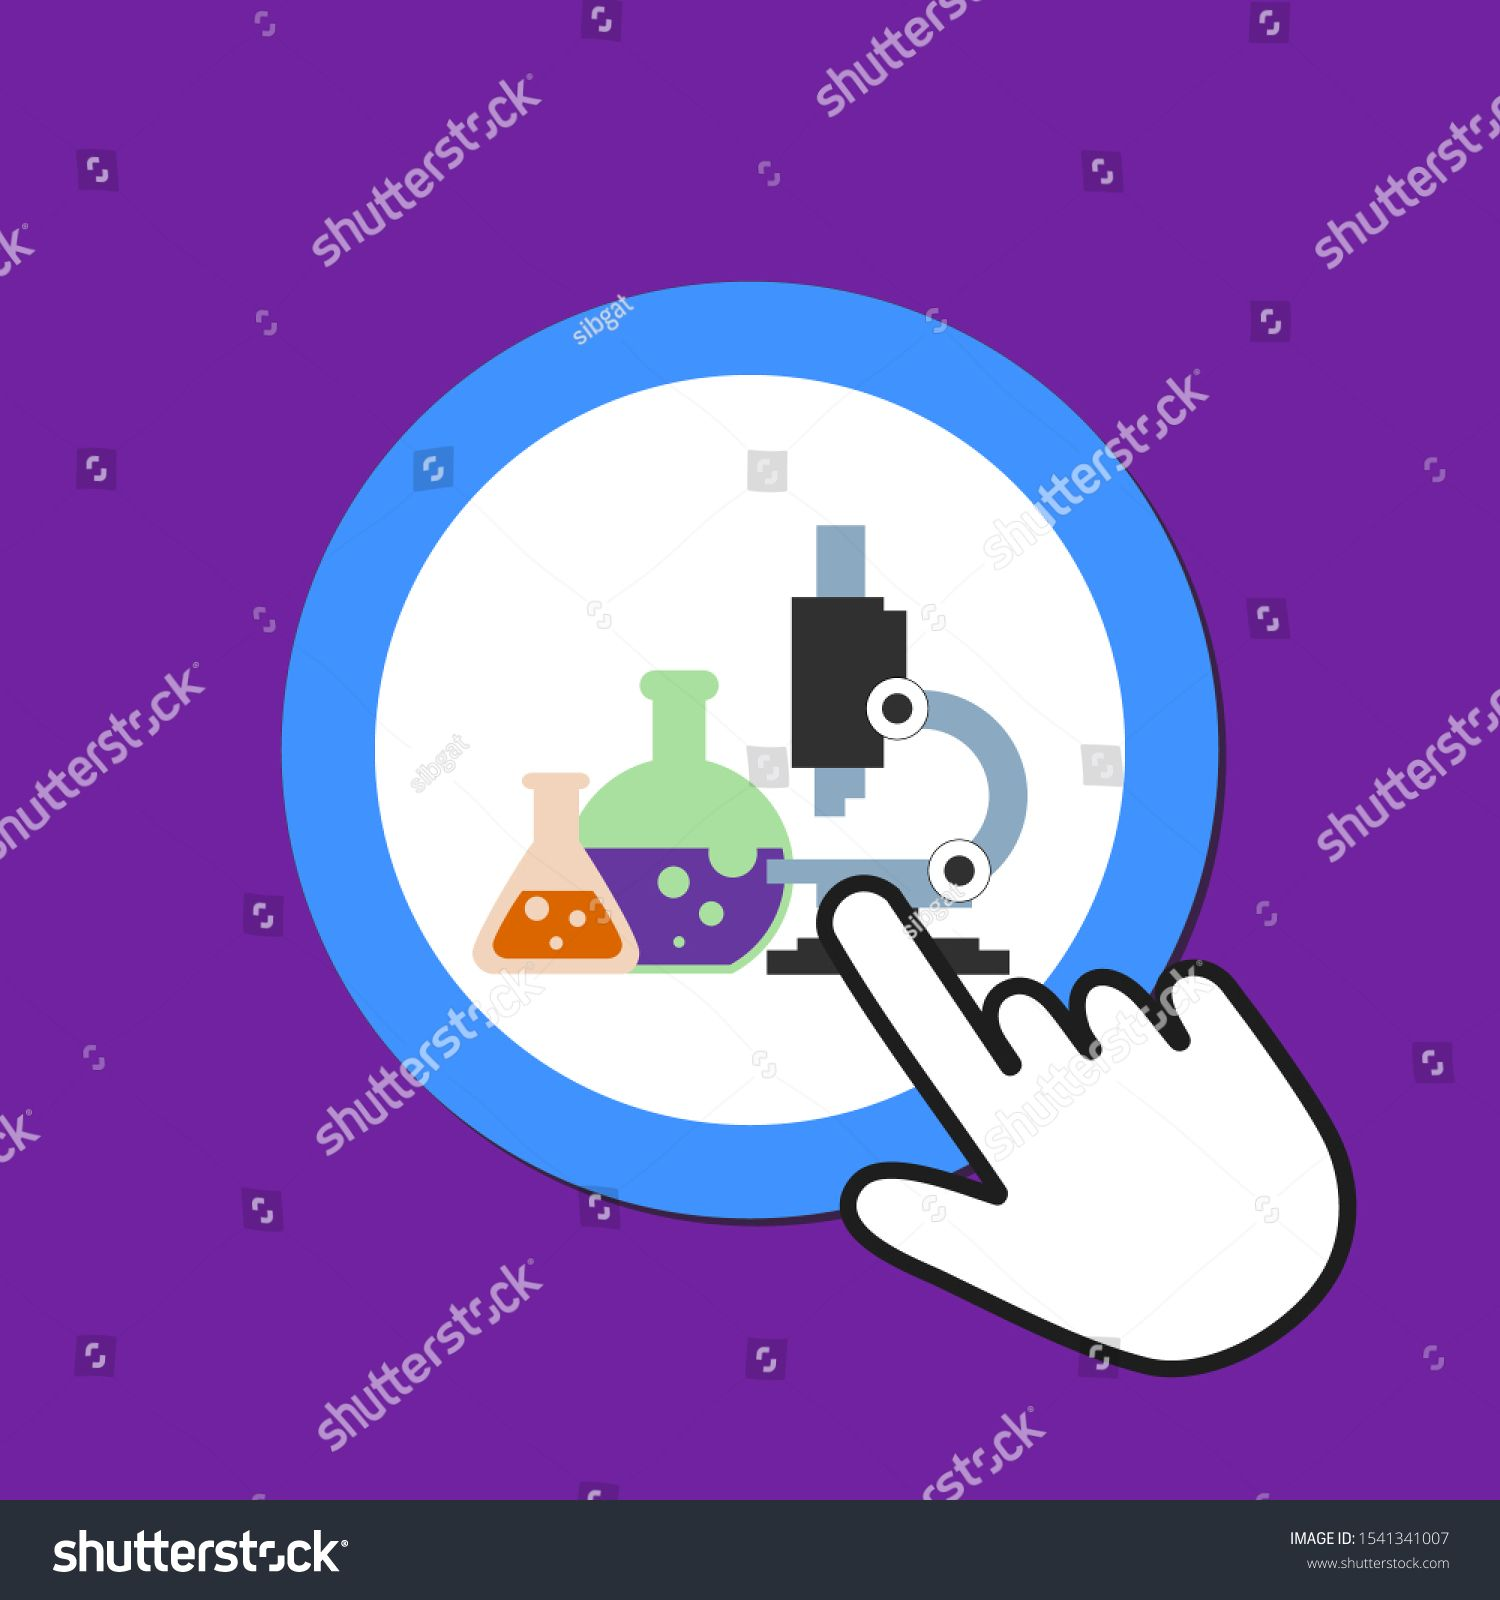 Microscope, chemistry icon. Lab, science concept. Hand